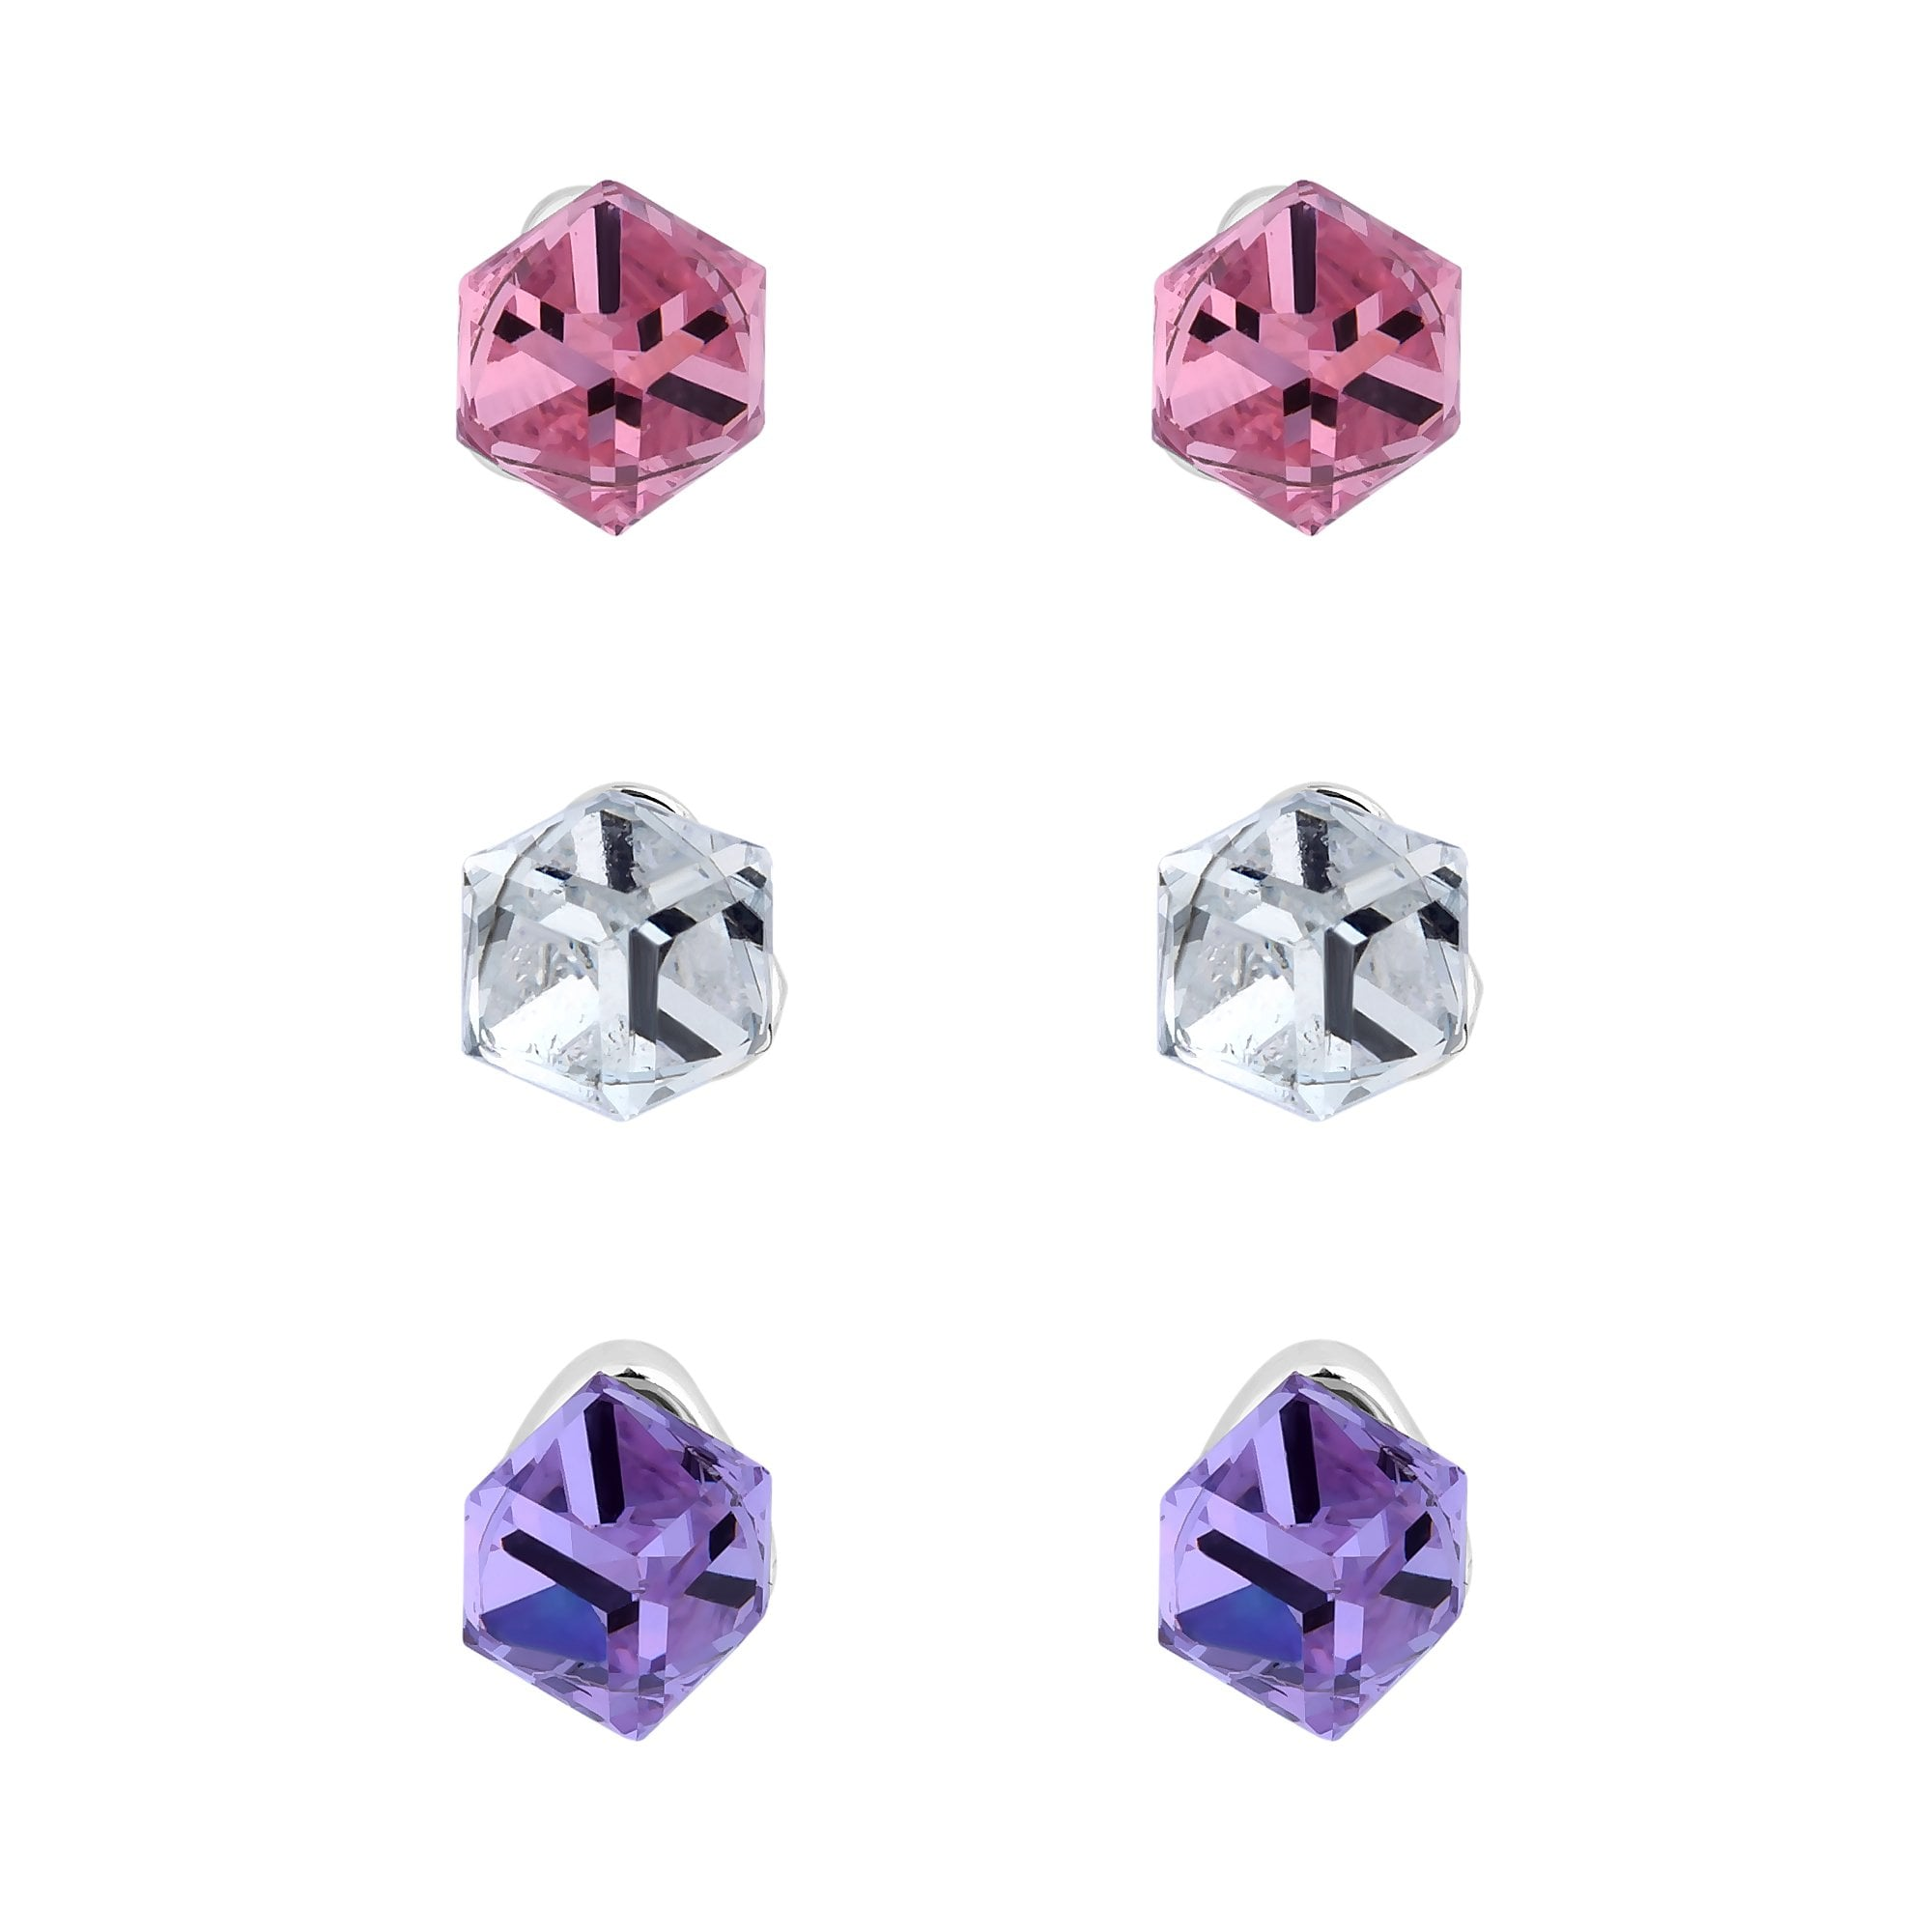 e6971098d2 ... Cube Stud Earring Embellished. Jon Richard Made With Swarovski Crystals  Silver Plated Multi